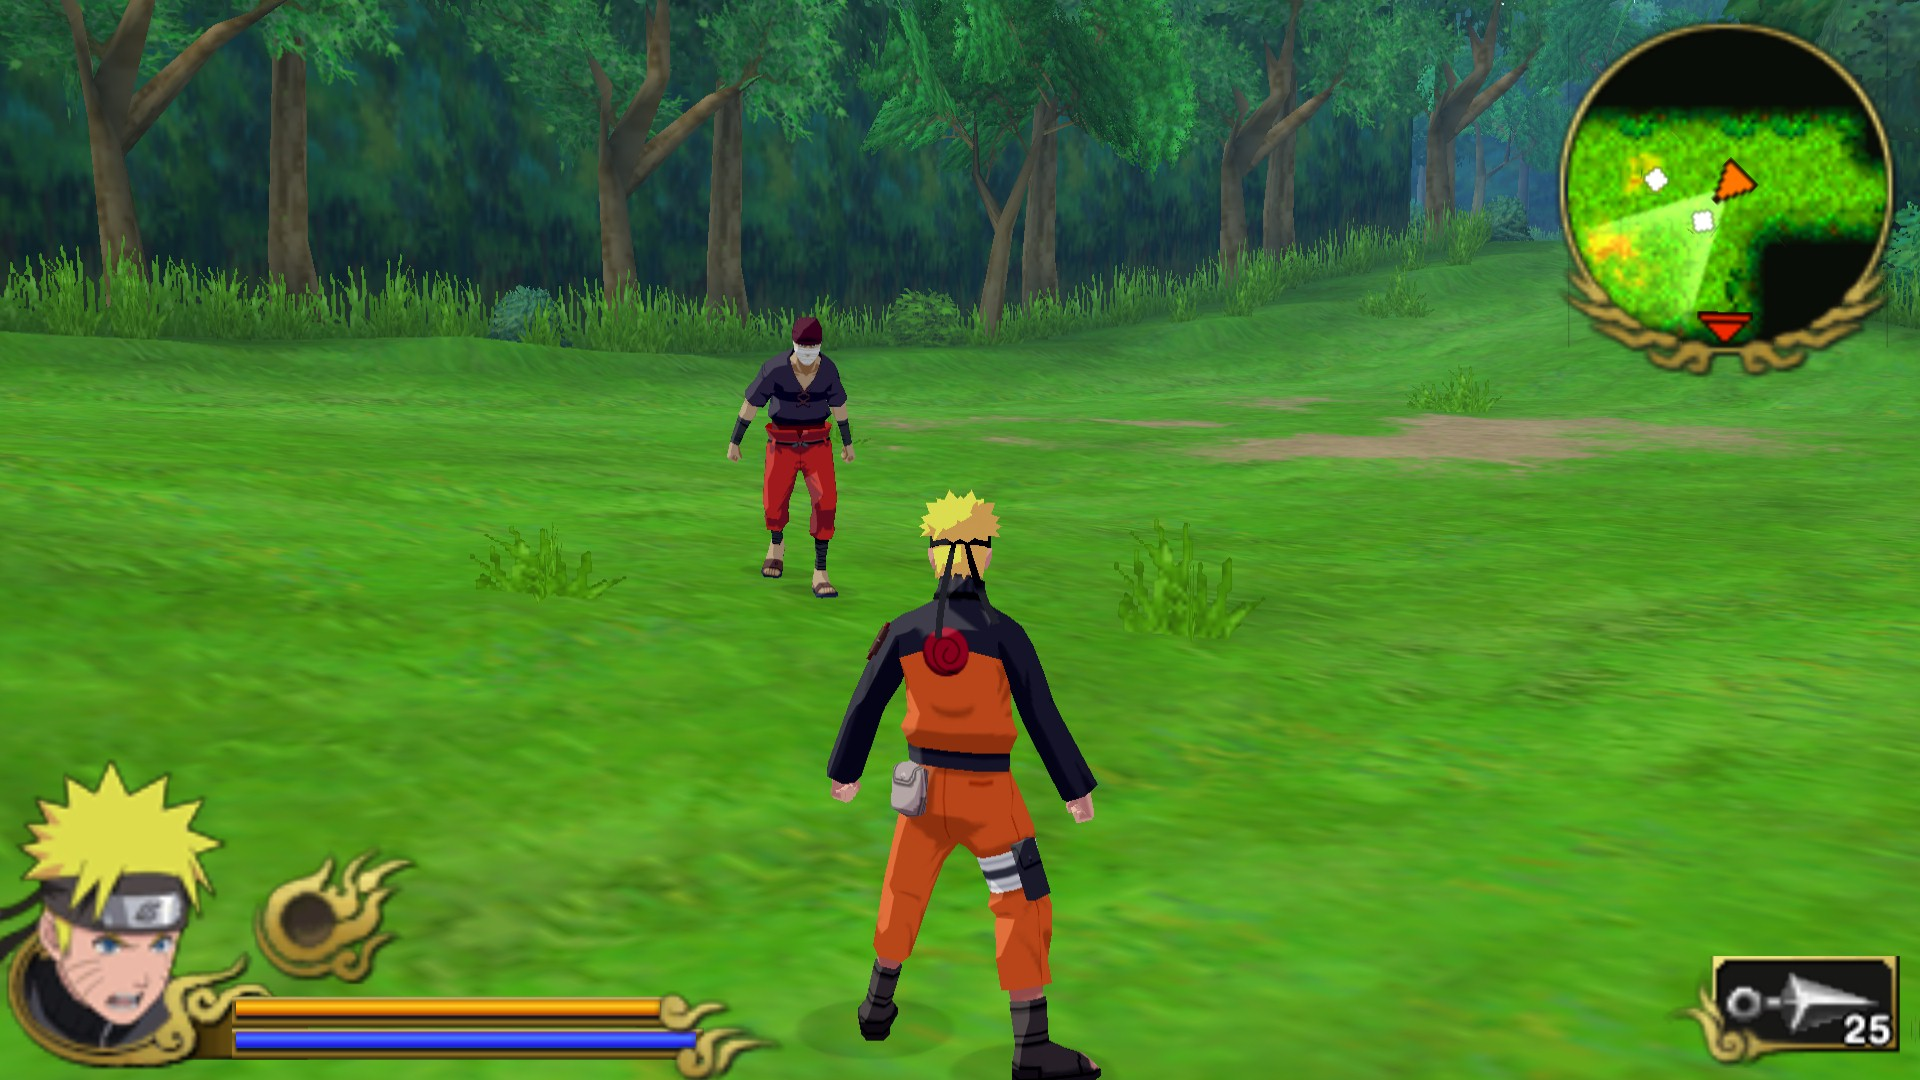 download file naruto ppsspp cso